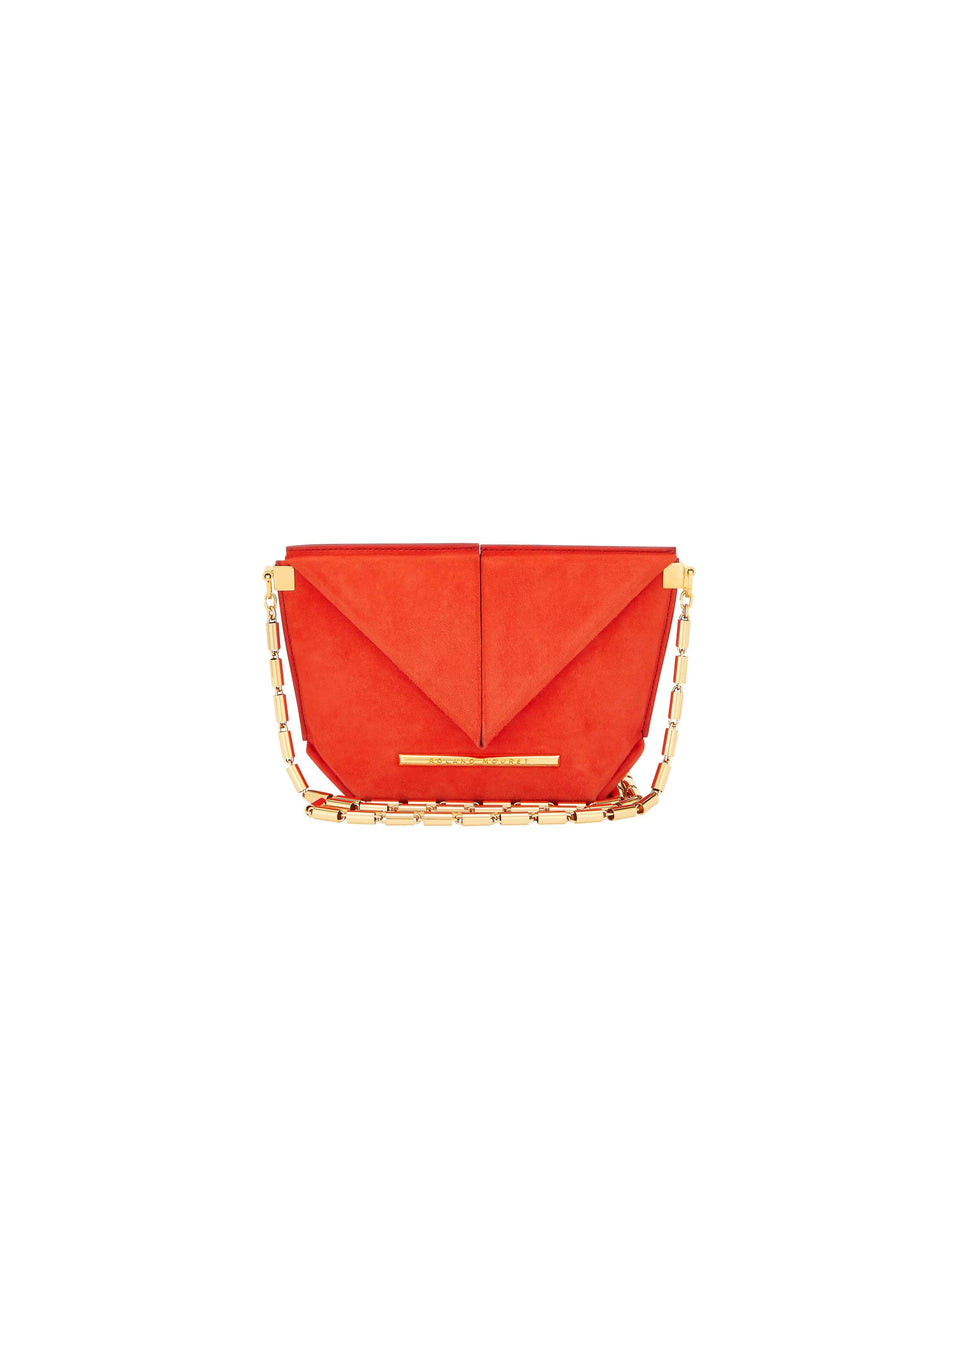 Mini Classico Bag In Poppy Red from Roland Mouret